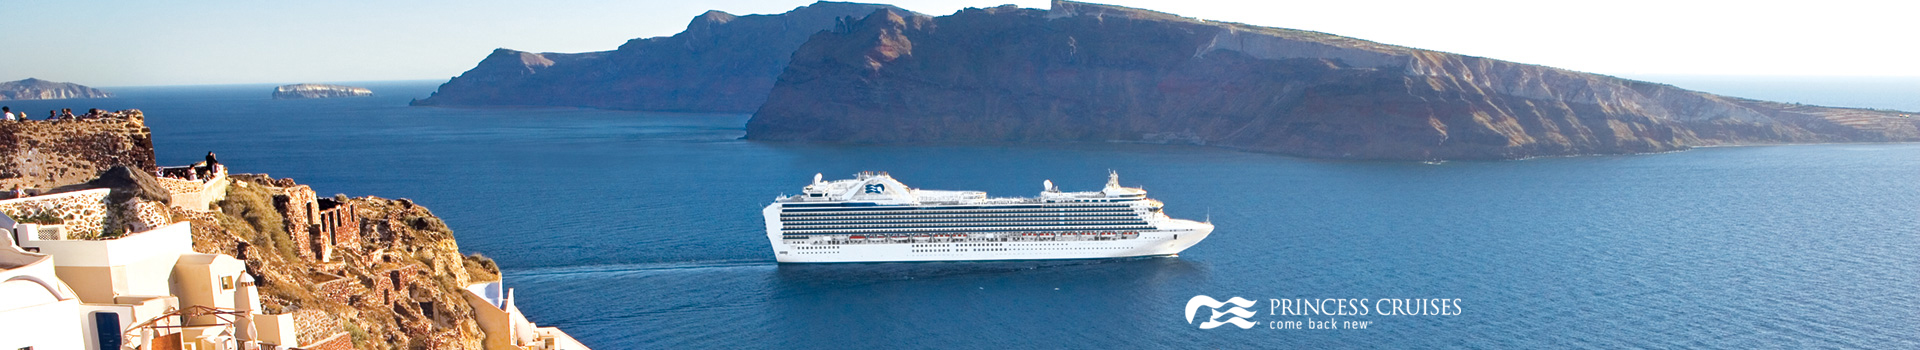 Princess Cruise Line Ships Deals Packages